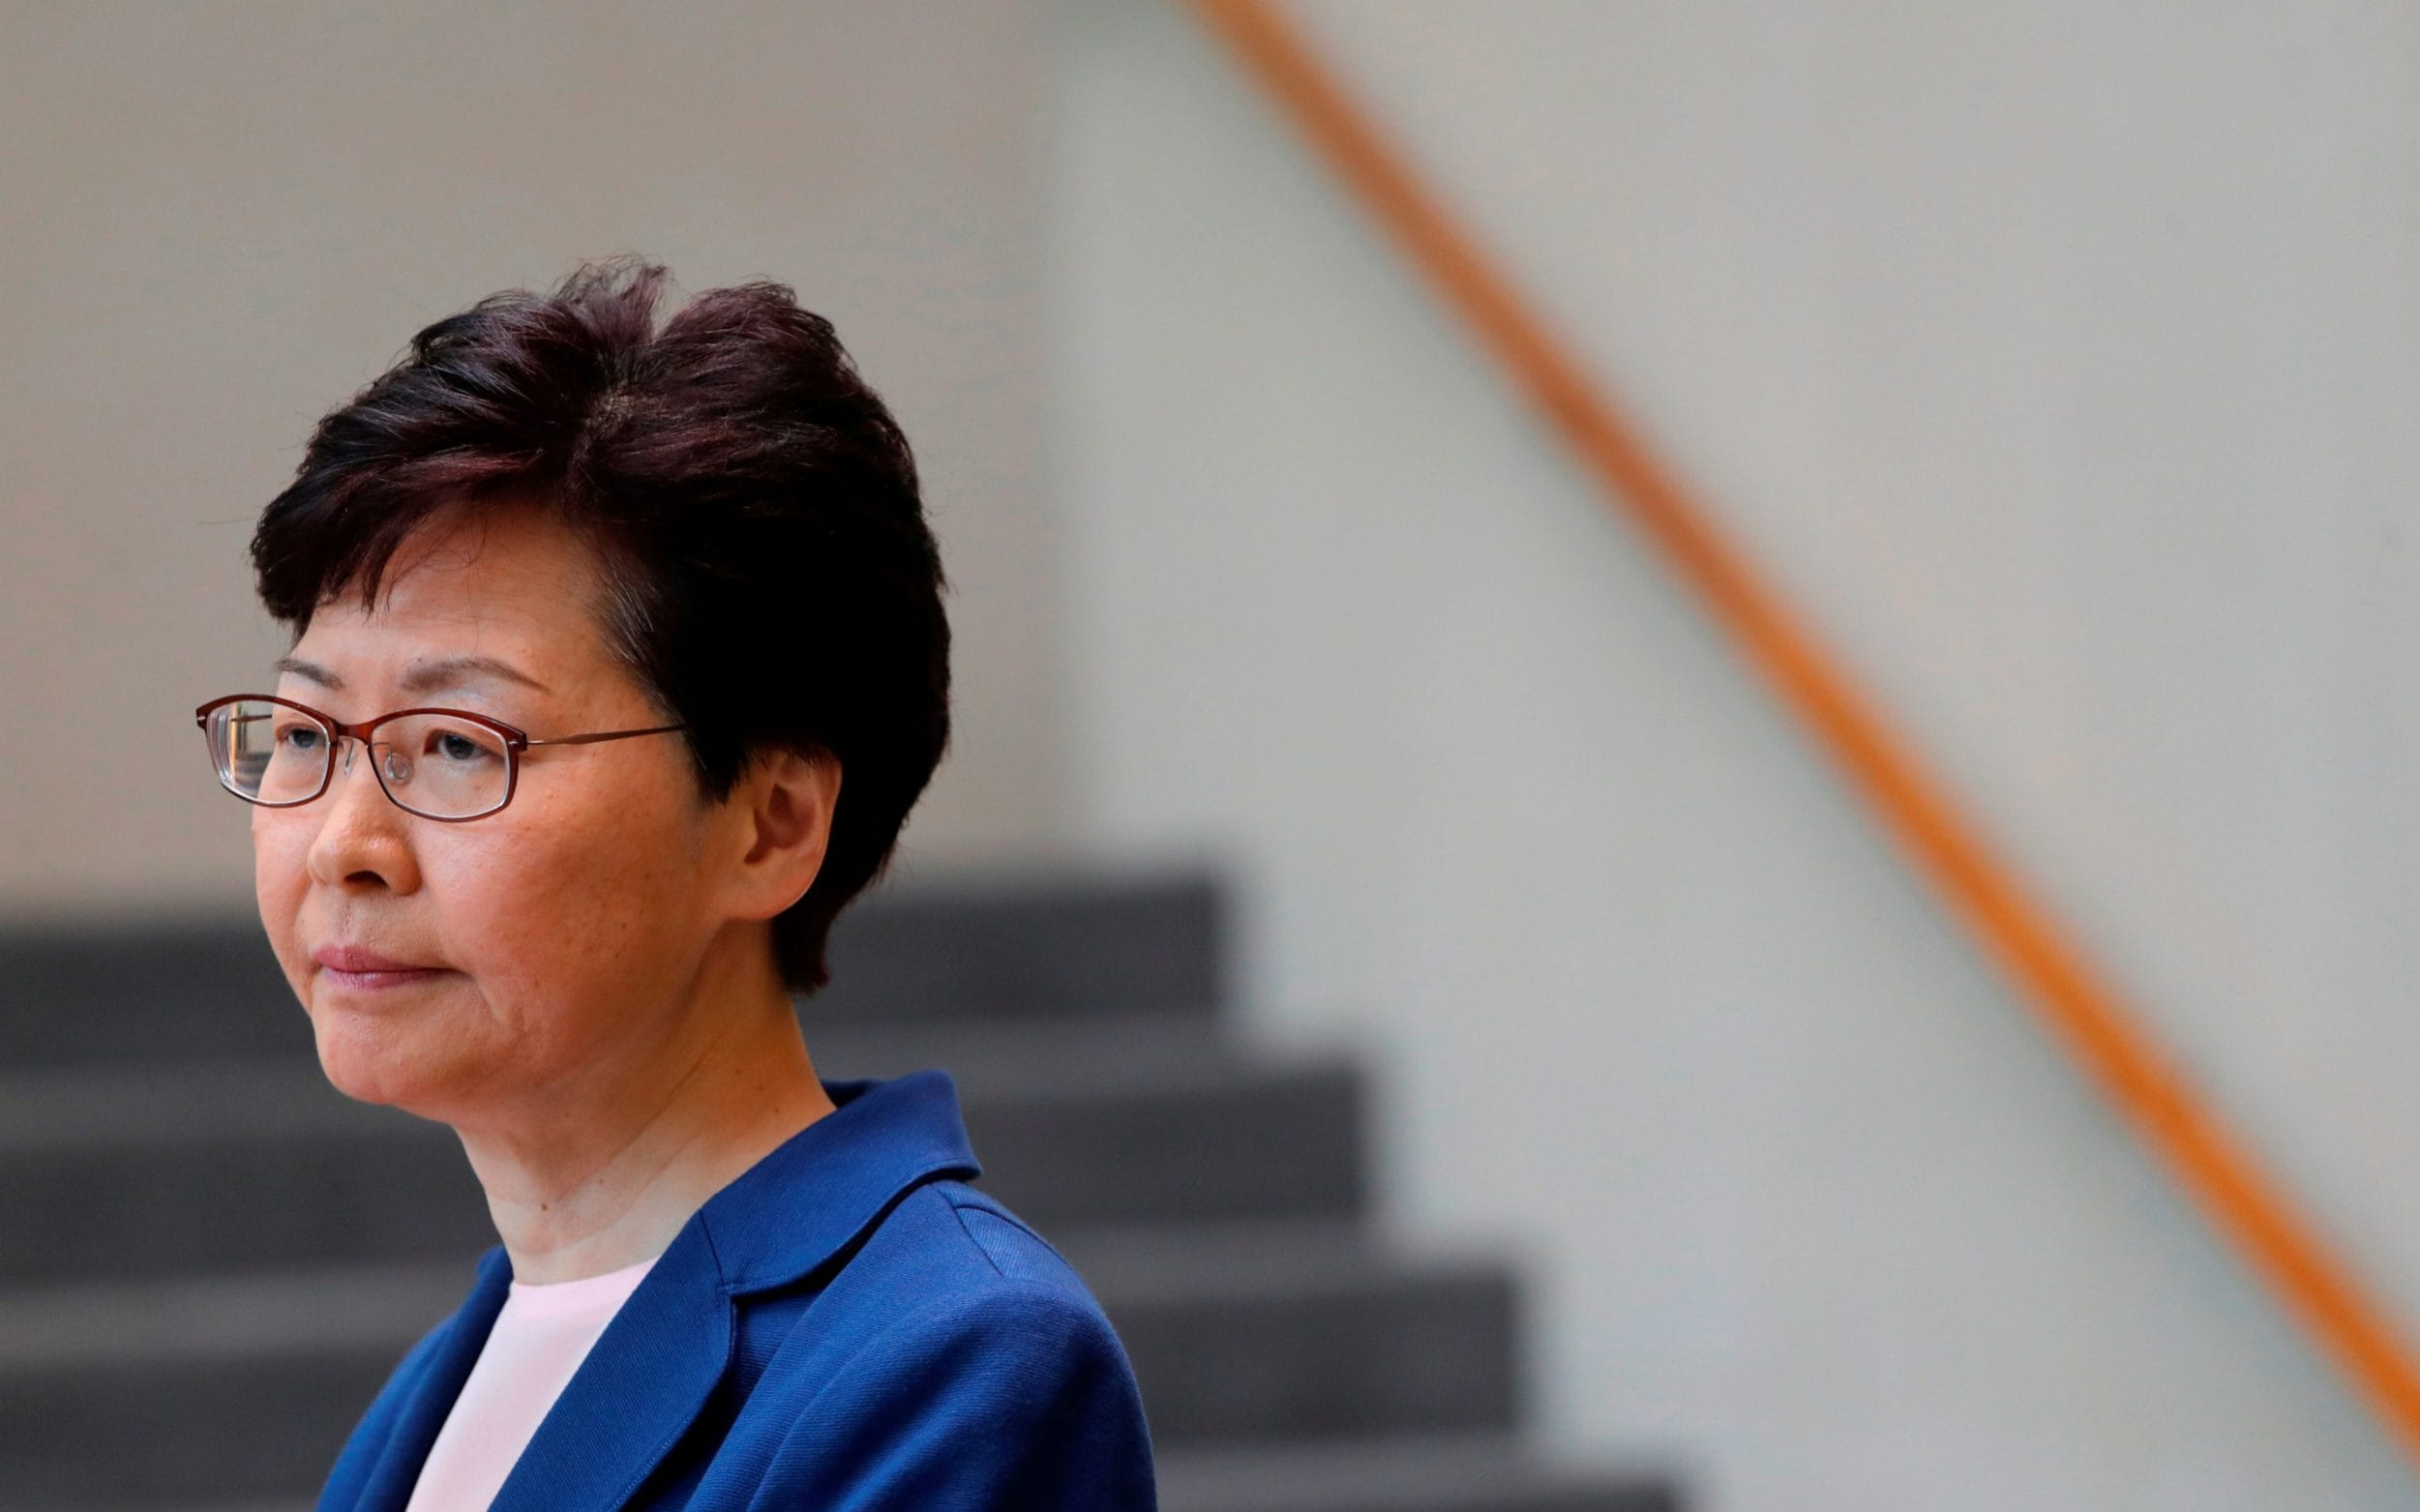 Hong Kong leader Carrie Lam recorded saying she would resign if she could